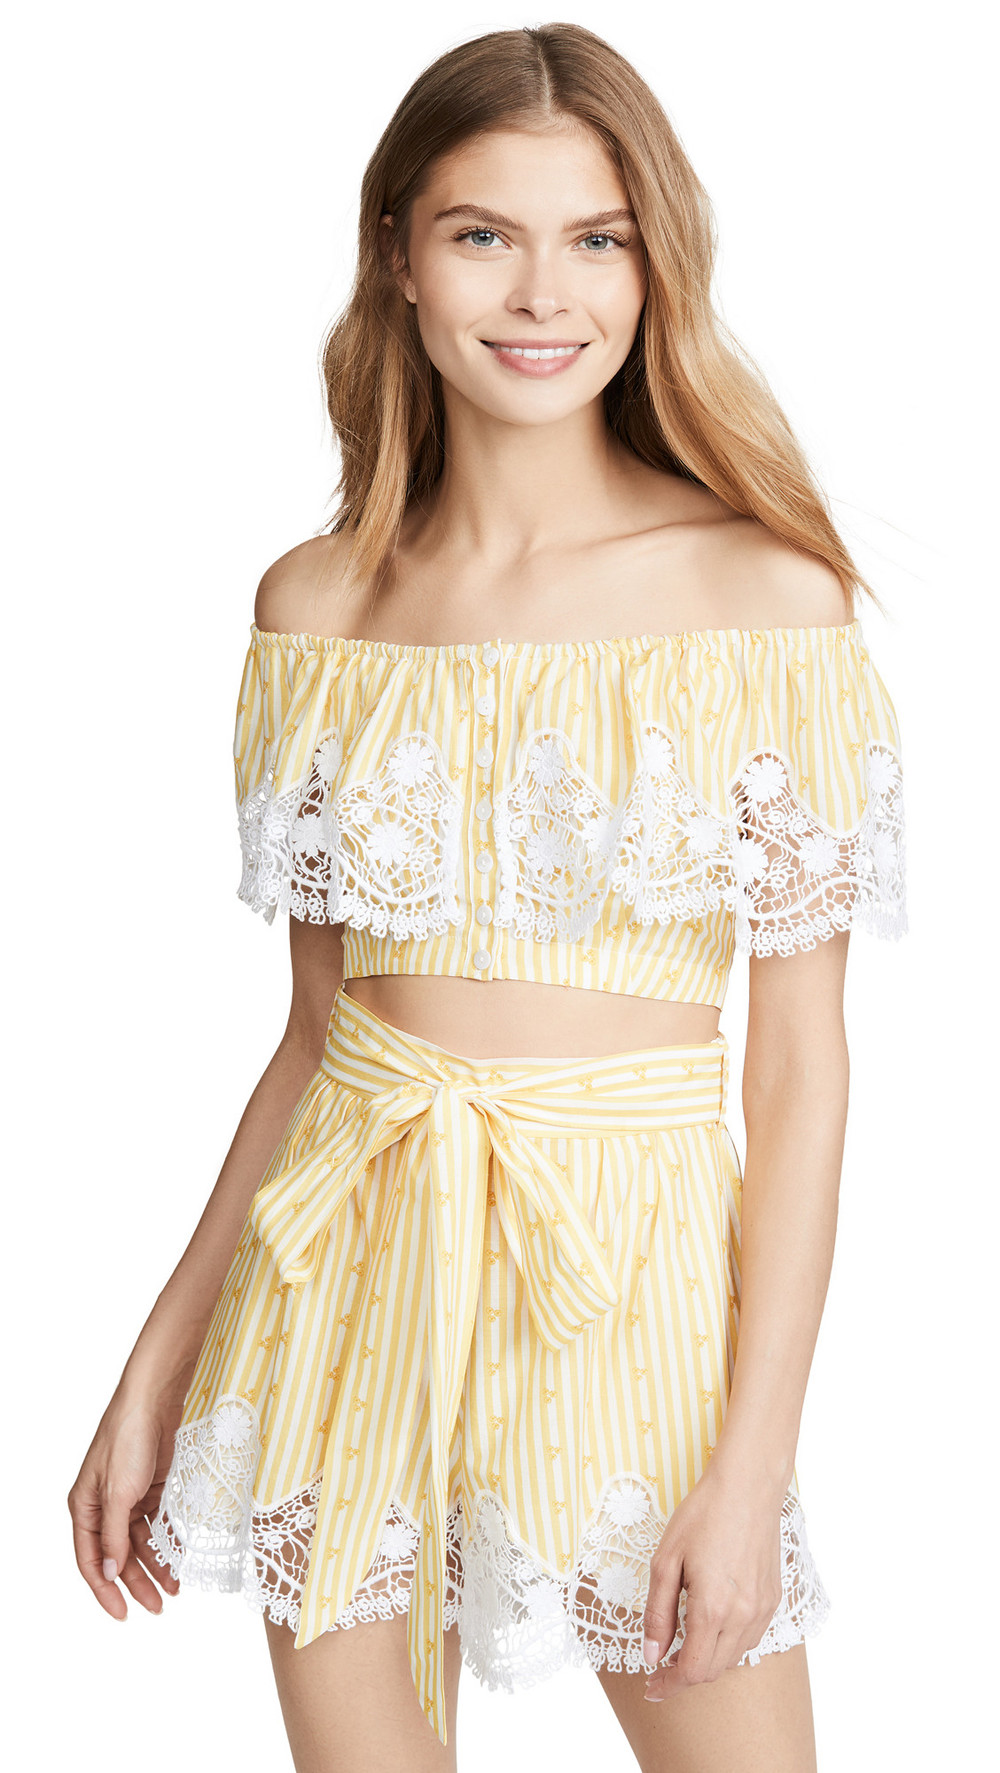 Miguelina Jenna Top in yellow